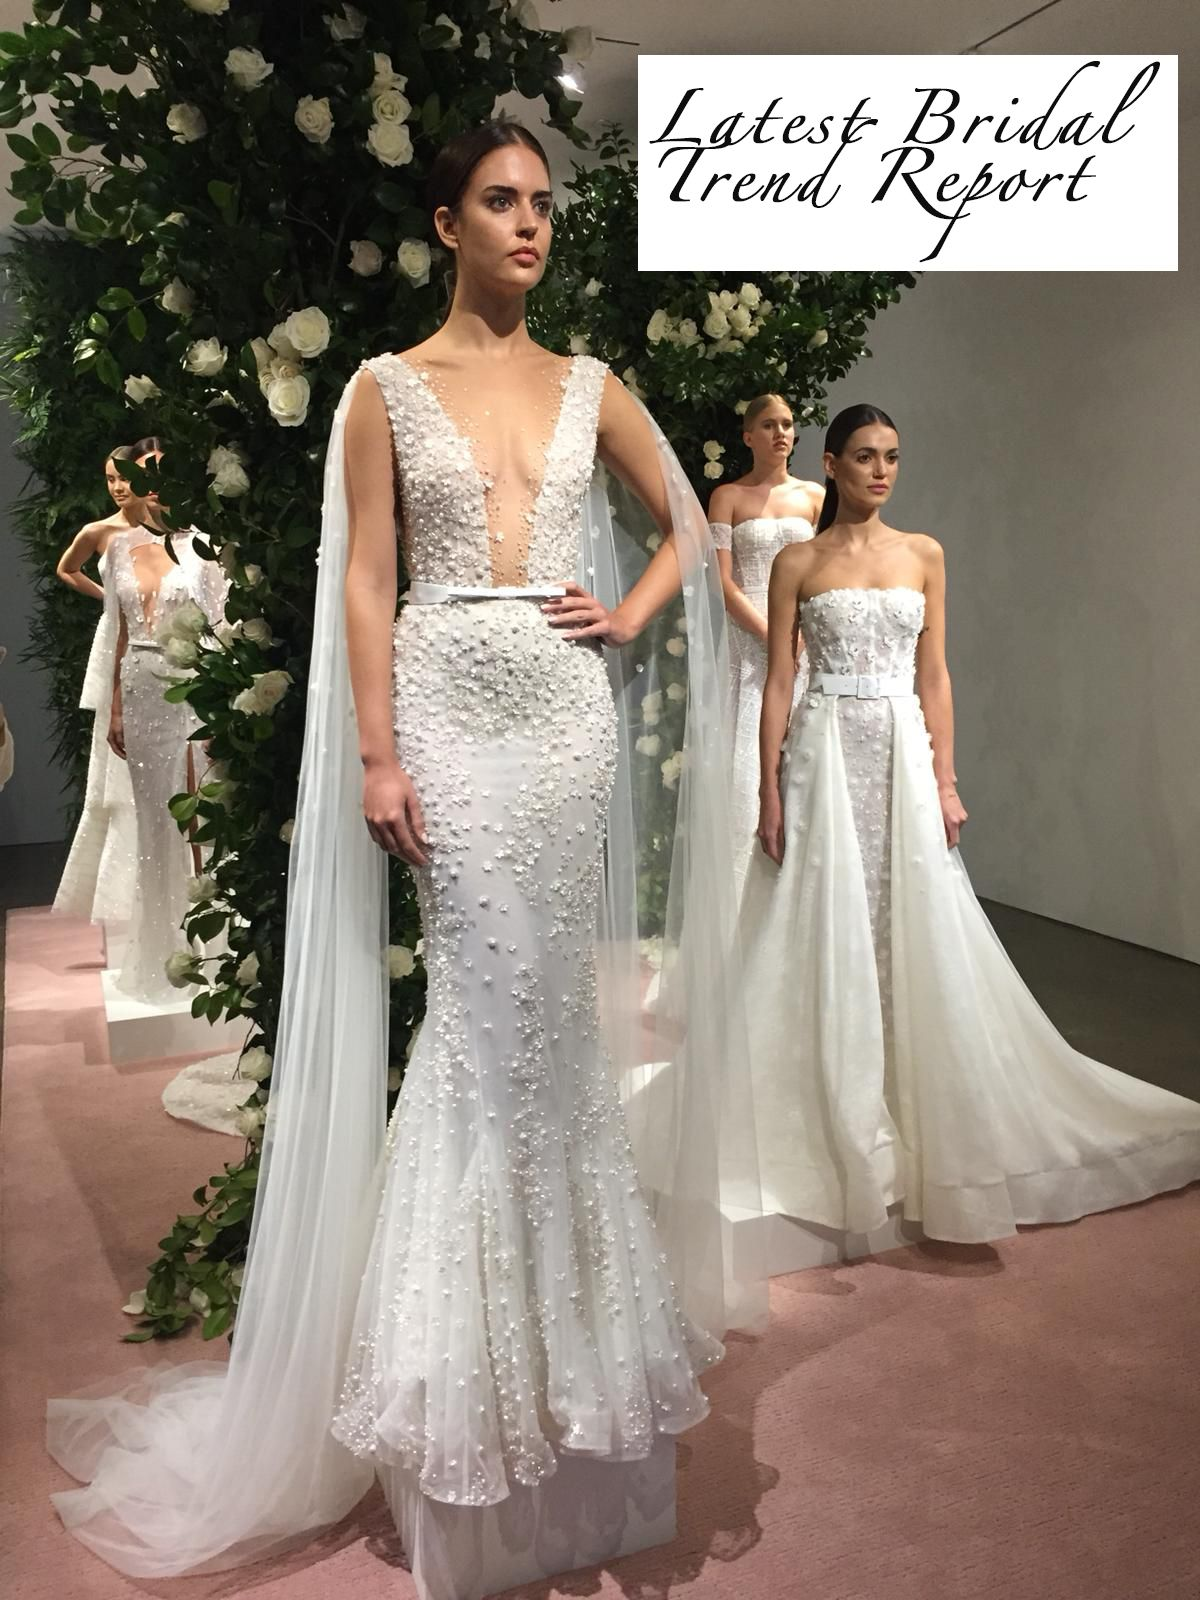 632fcb4b6d9d Get the latest wedding dress bridal trend report live from the 2019 New  York Bridal Fashion Week #NYBFW. Featuring Lee Grebenau at Spina Bride, ...